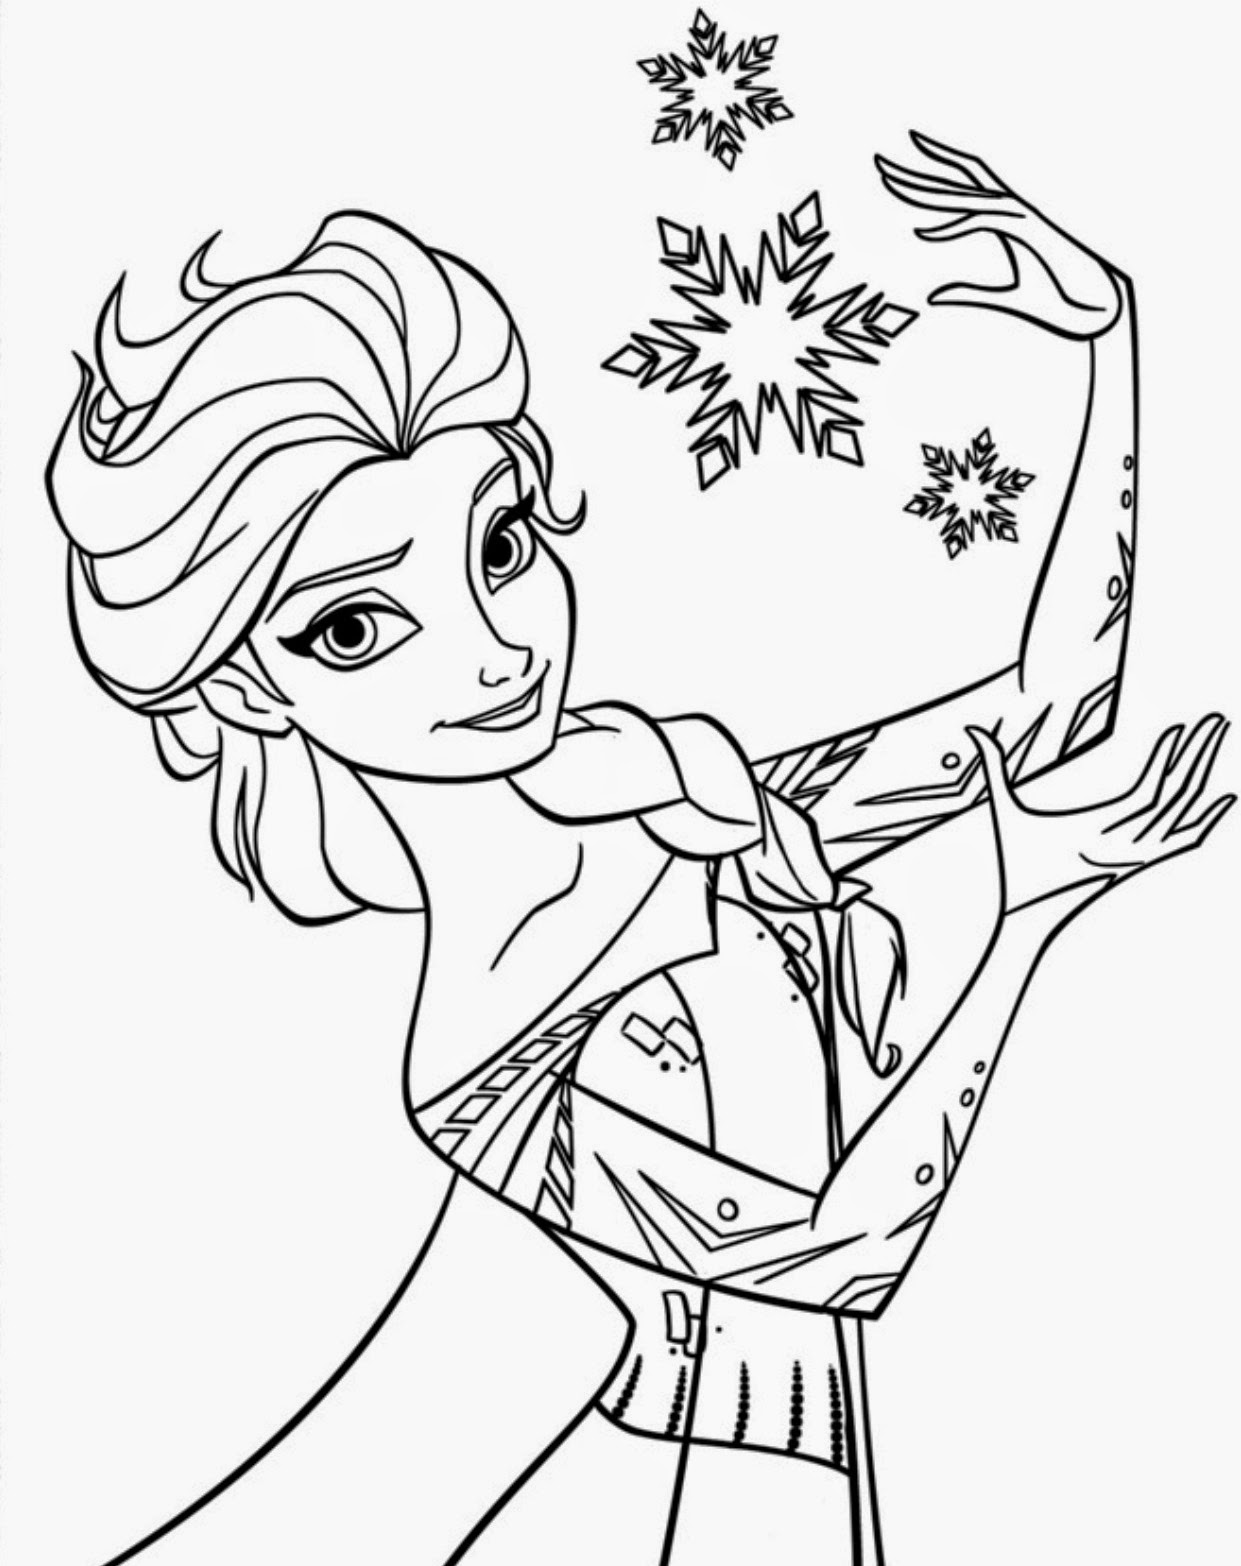 Coloring Pages Of Disney Frozen : Beautiful disney frozen coloring pages free instant